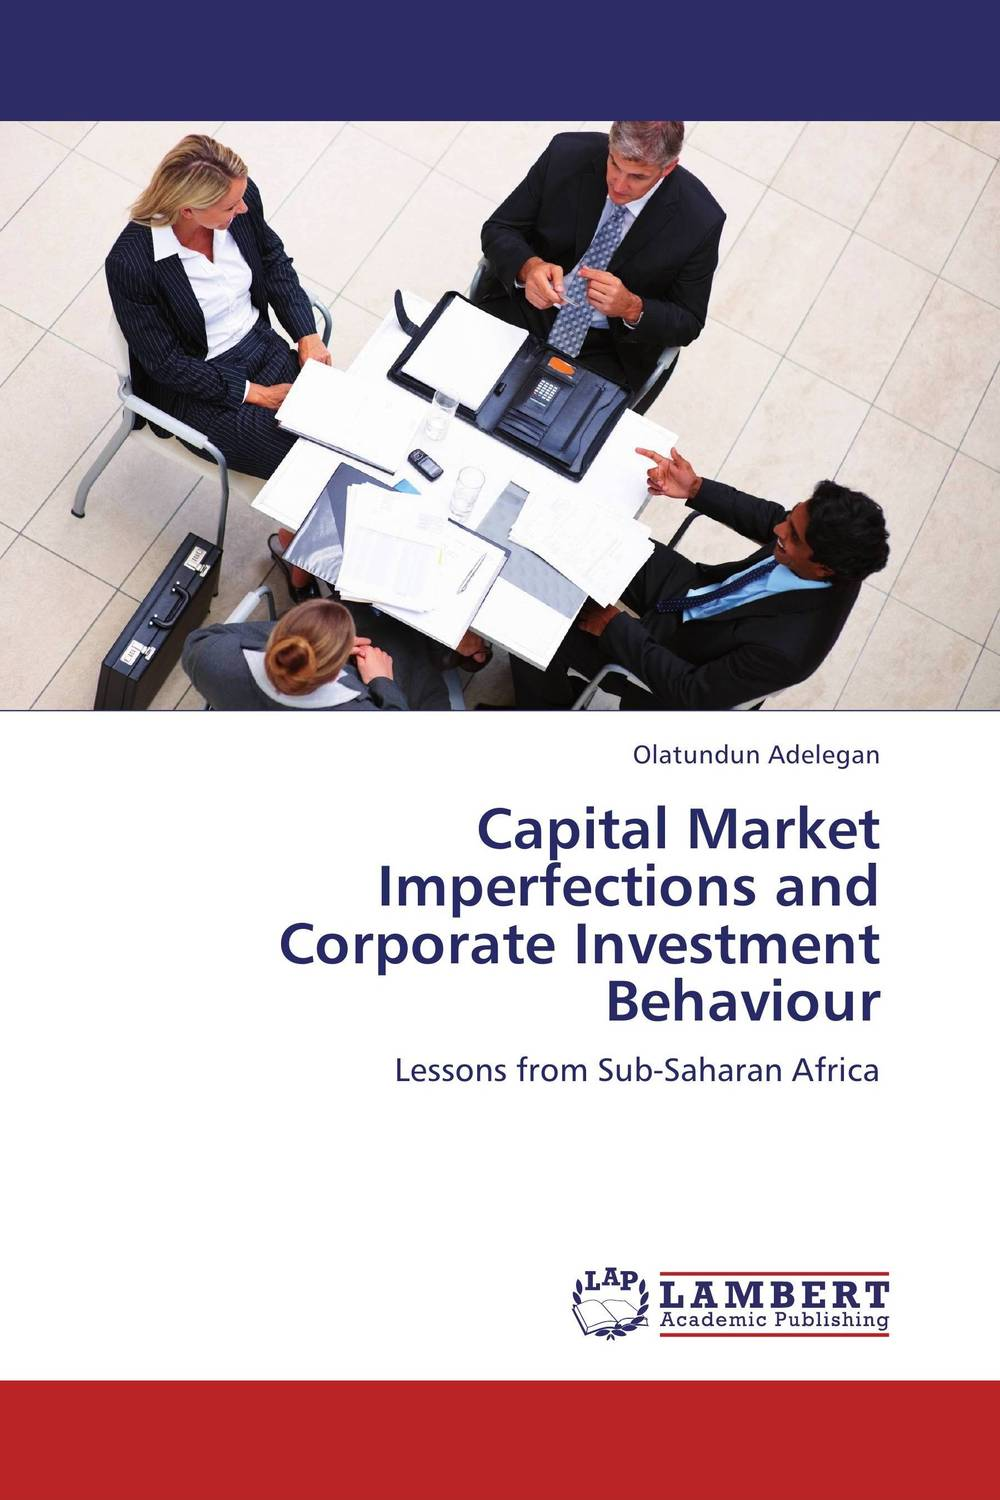 Capital Market Imperfections and Corporate Investment Behaviour jerald pinto e economics for investment decision makers workbook micro macro and international economics